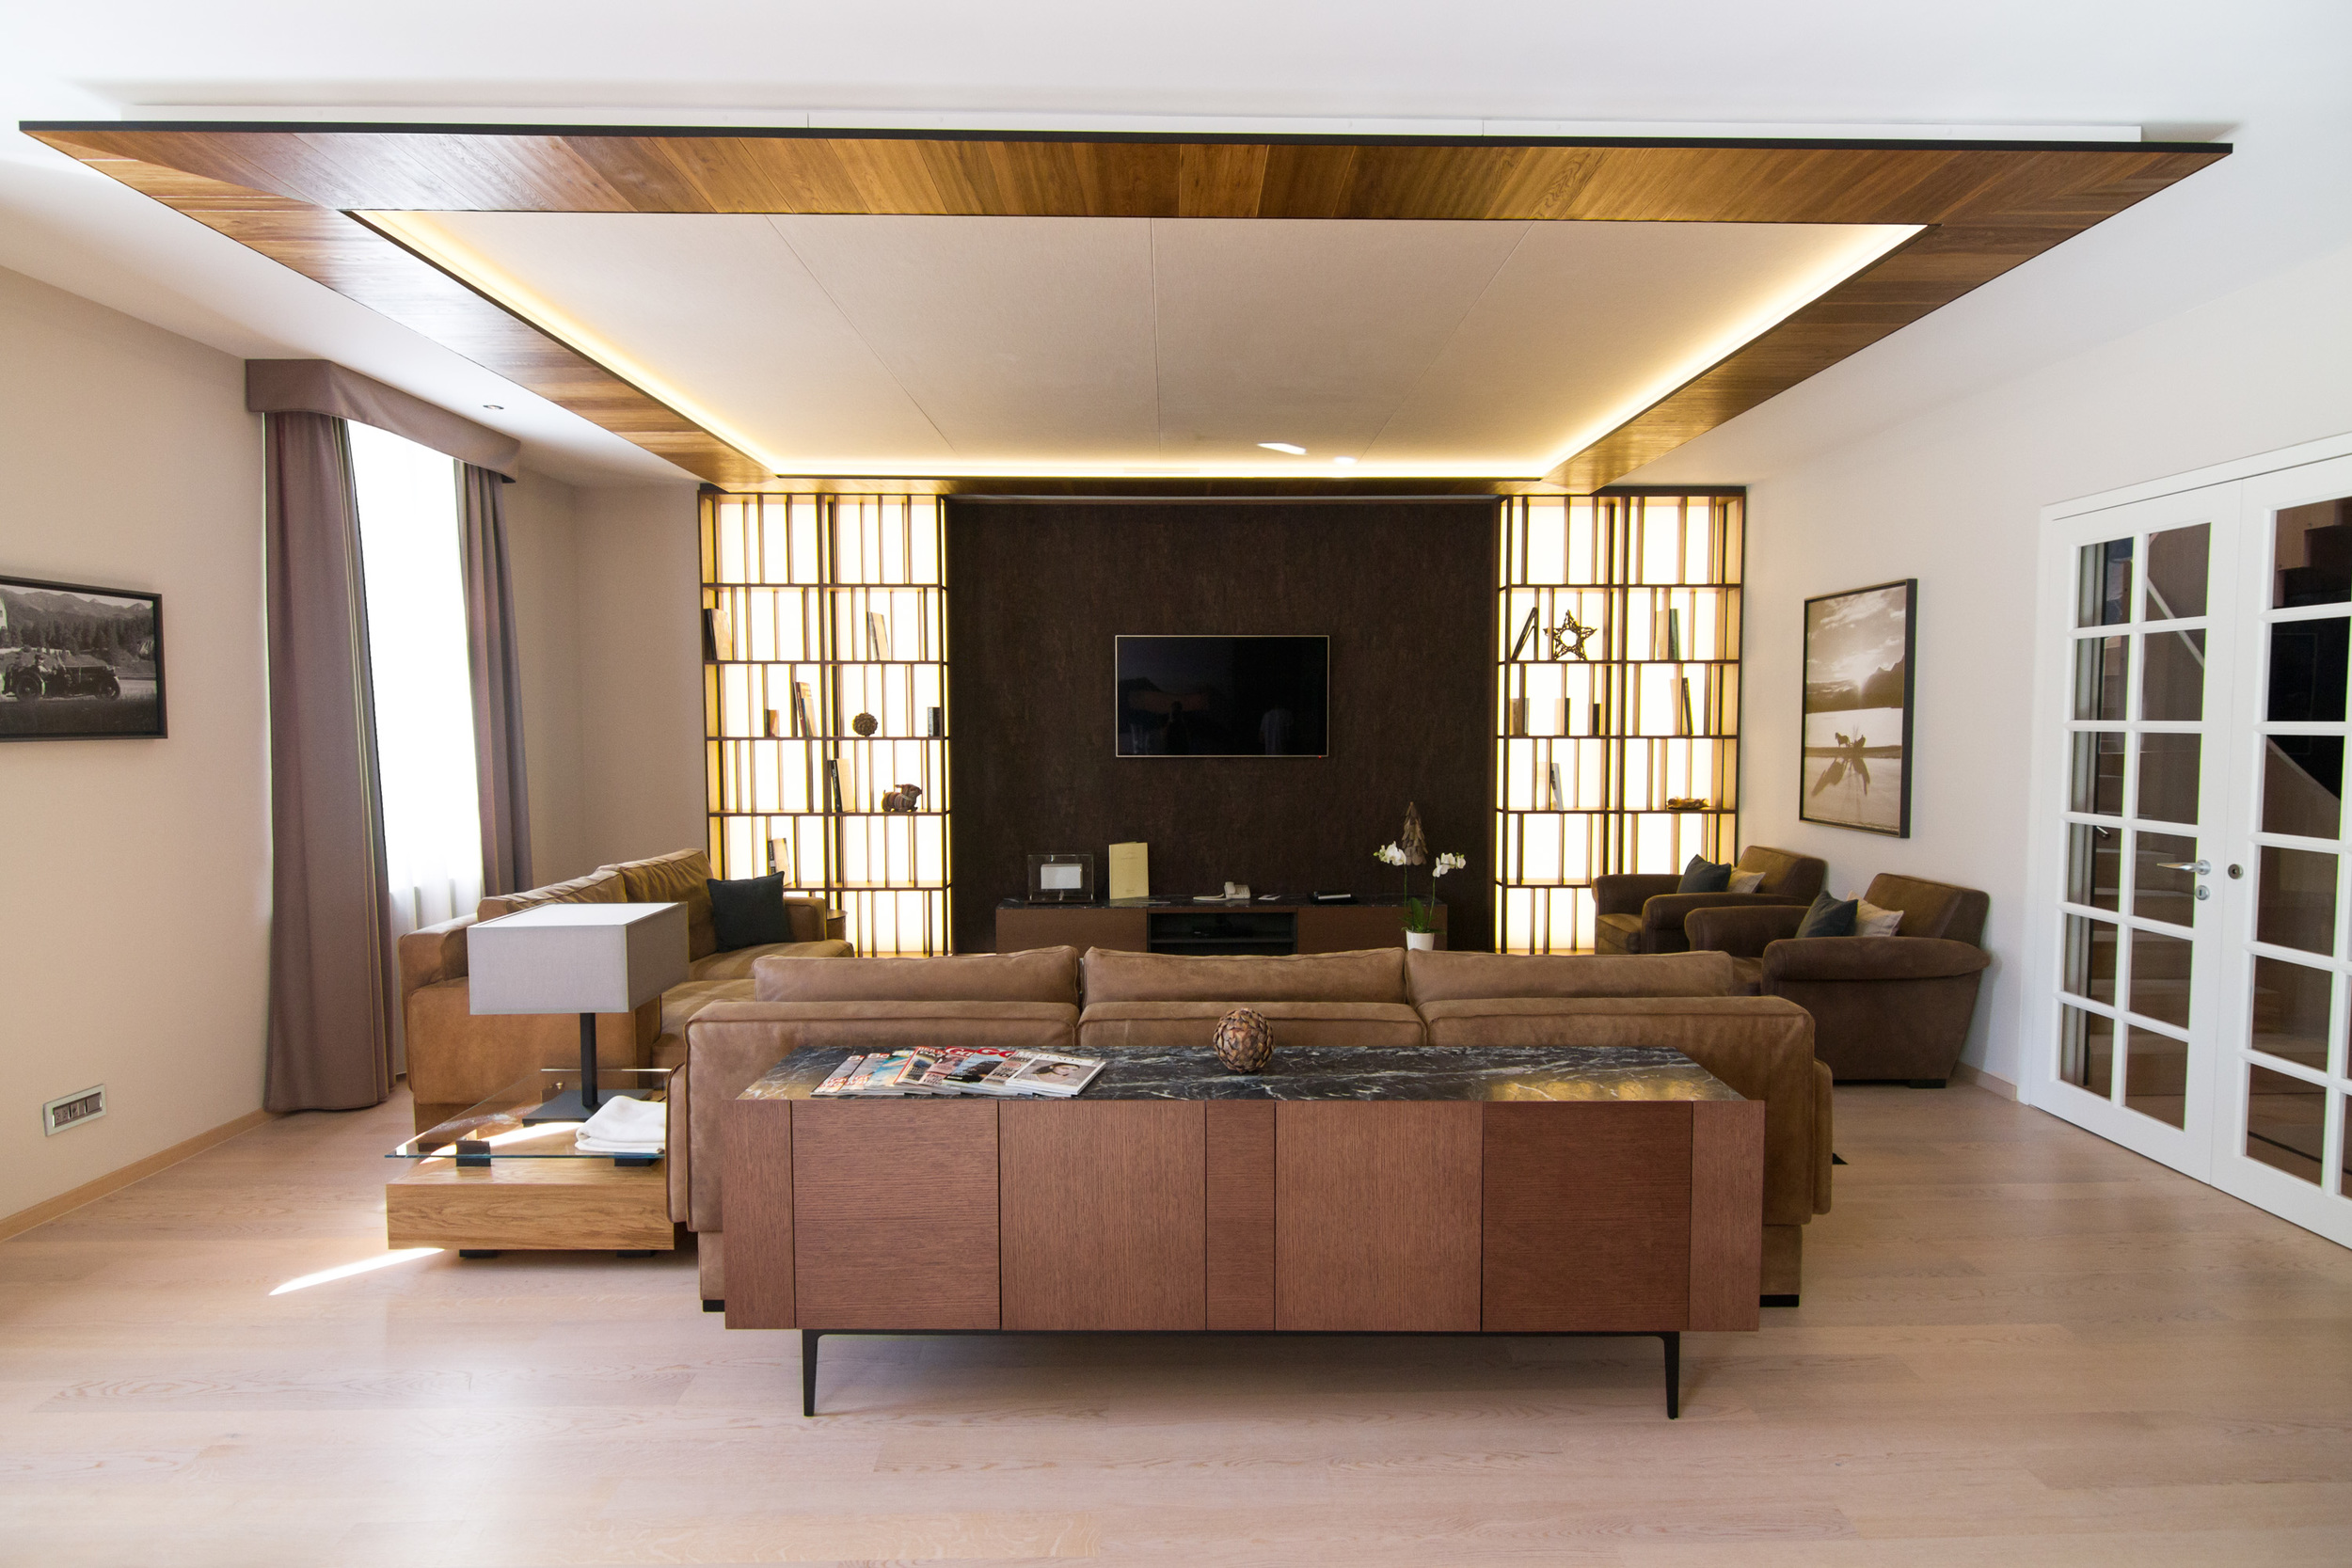 Living room of the Corvatsch Tower residence